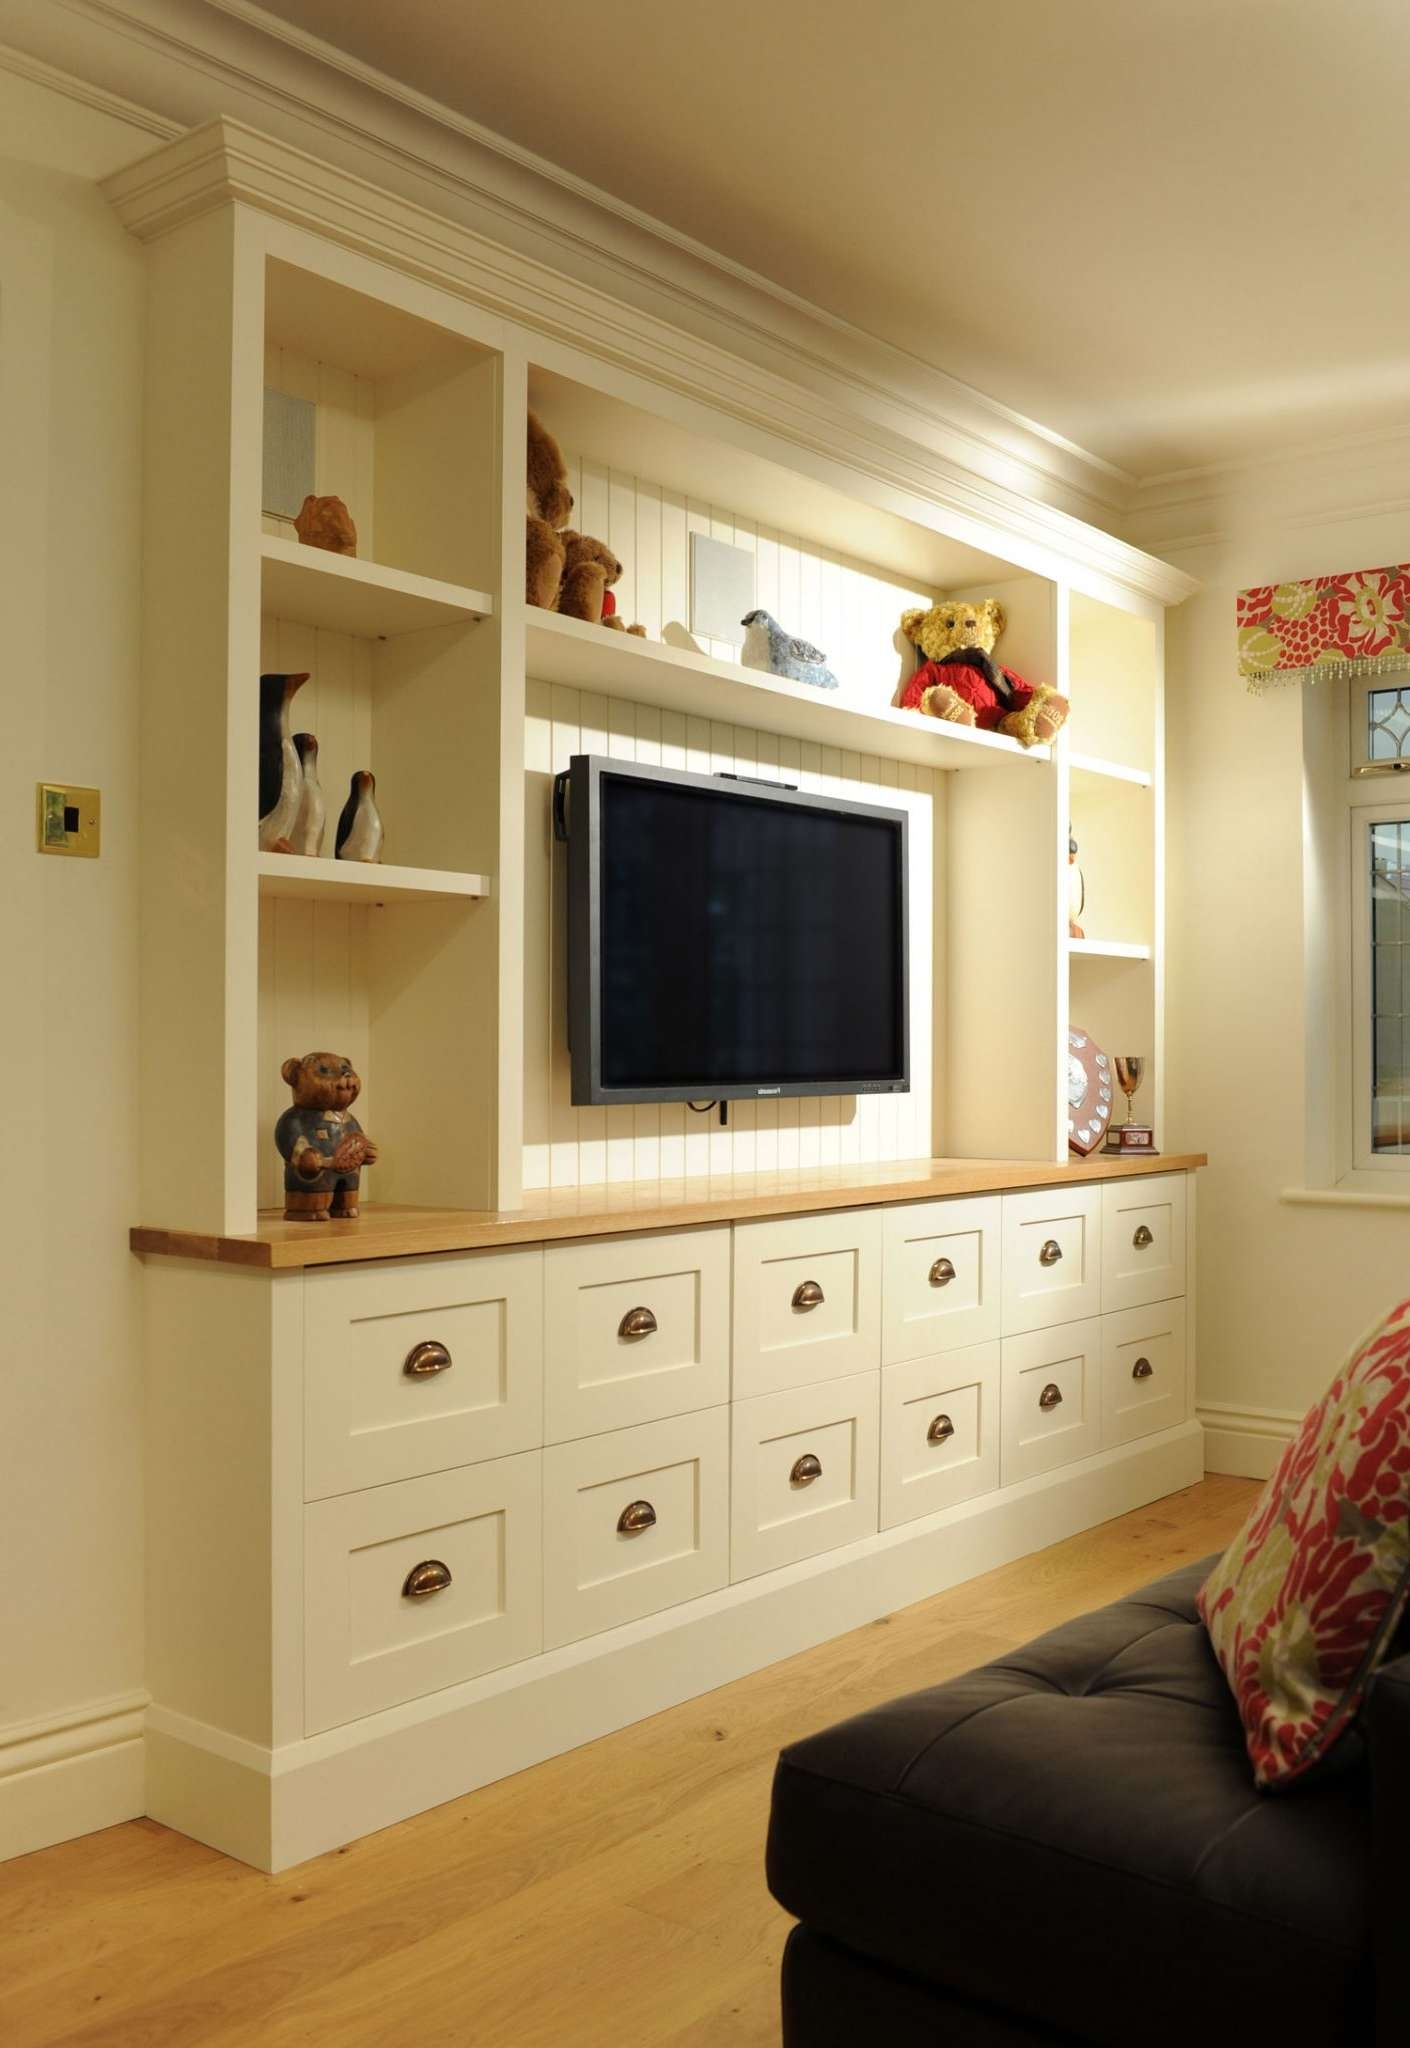 Bespoke Tv Units & Media Cabinets Custom Madehand – James Mayor With Regard To Bespoke Tv Cabinets (View 4 of 20)